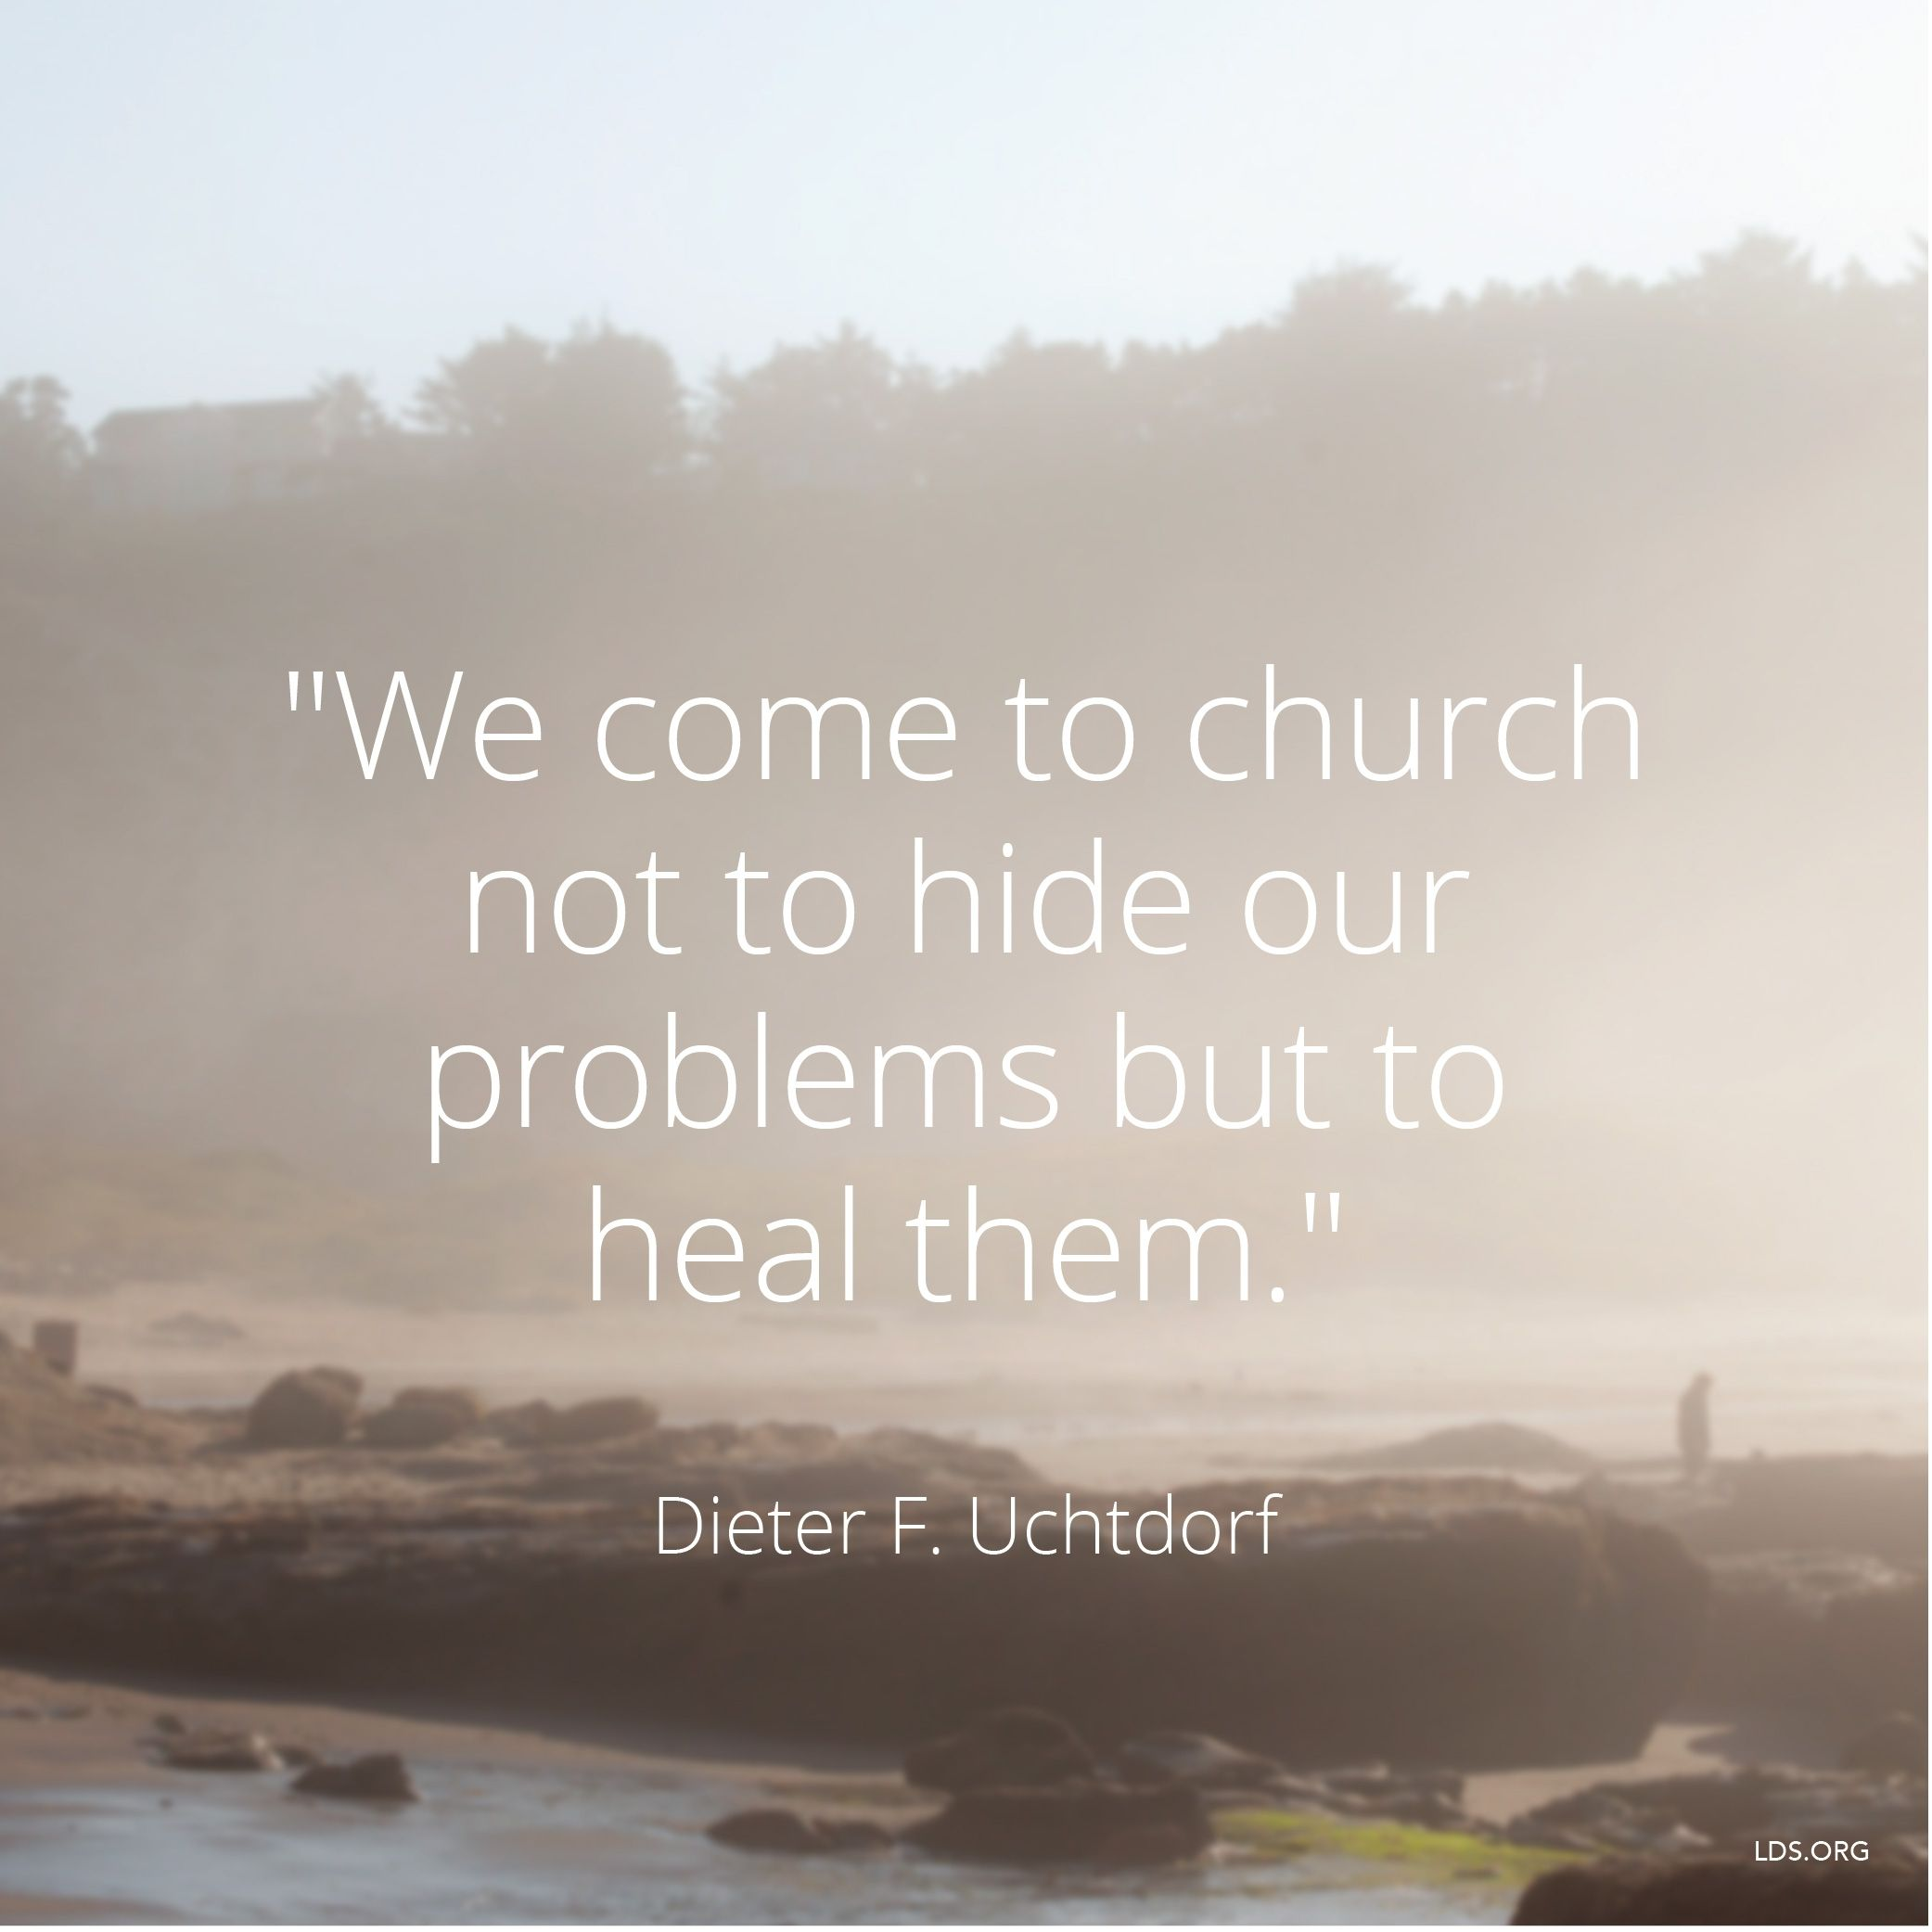 """""""We come to church not to hide our problems but to heal them.""""—President Dieter F. Uchtdorf, """"On Being Genuine"""""""